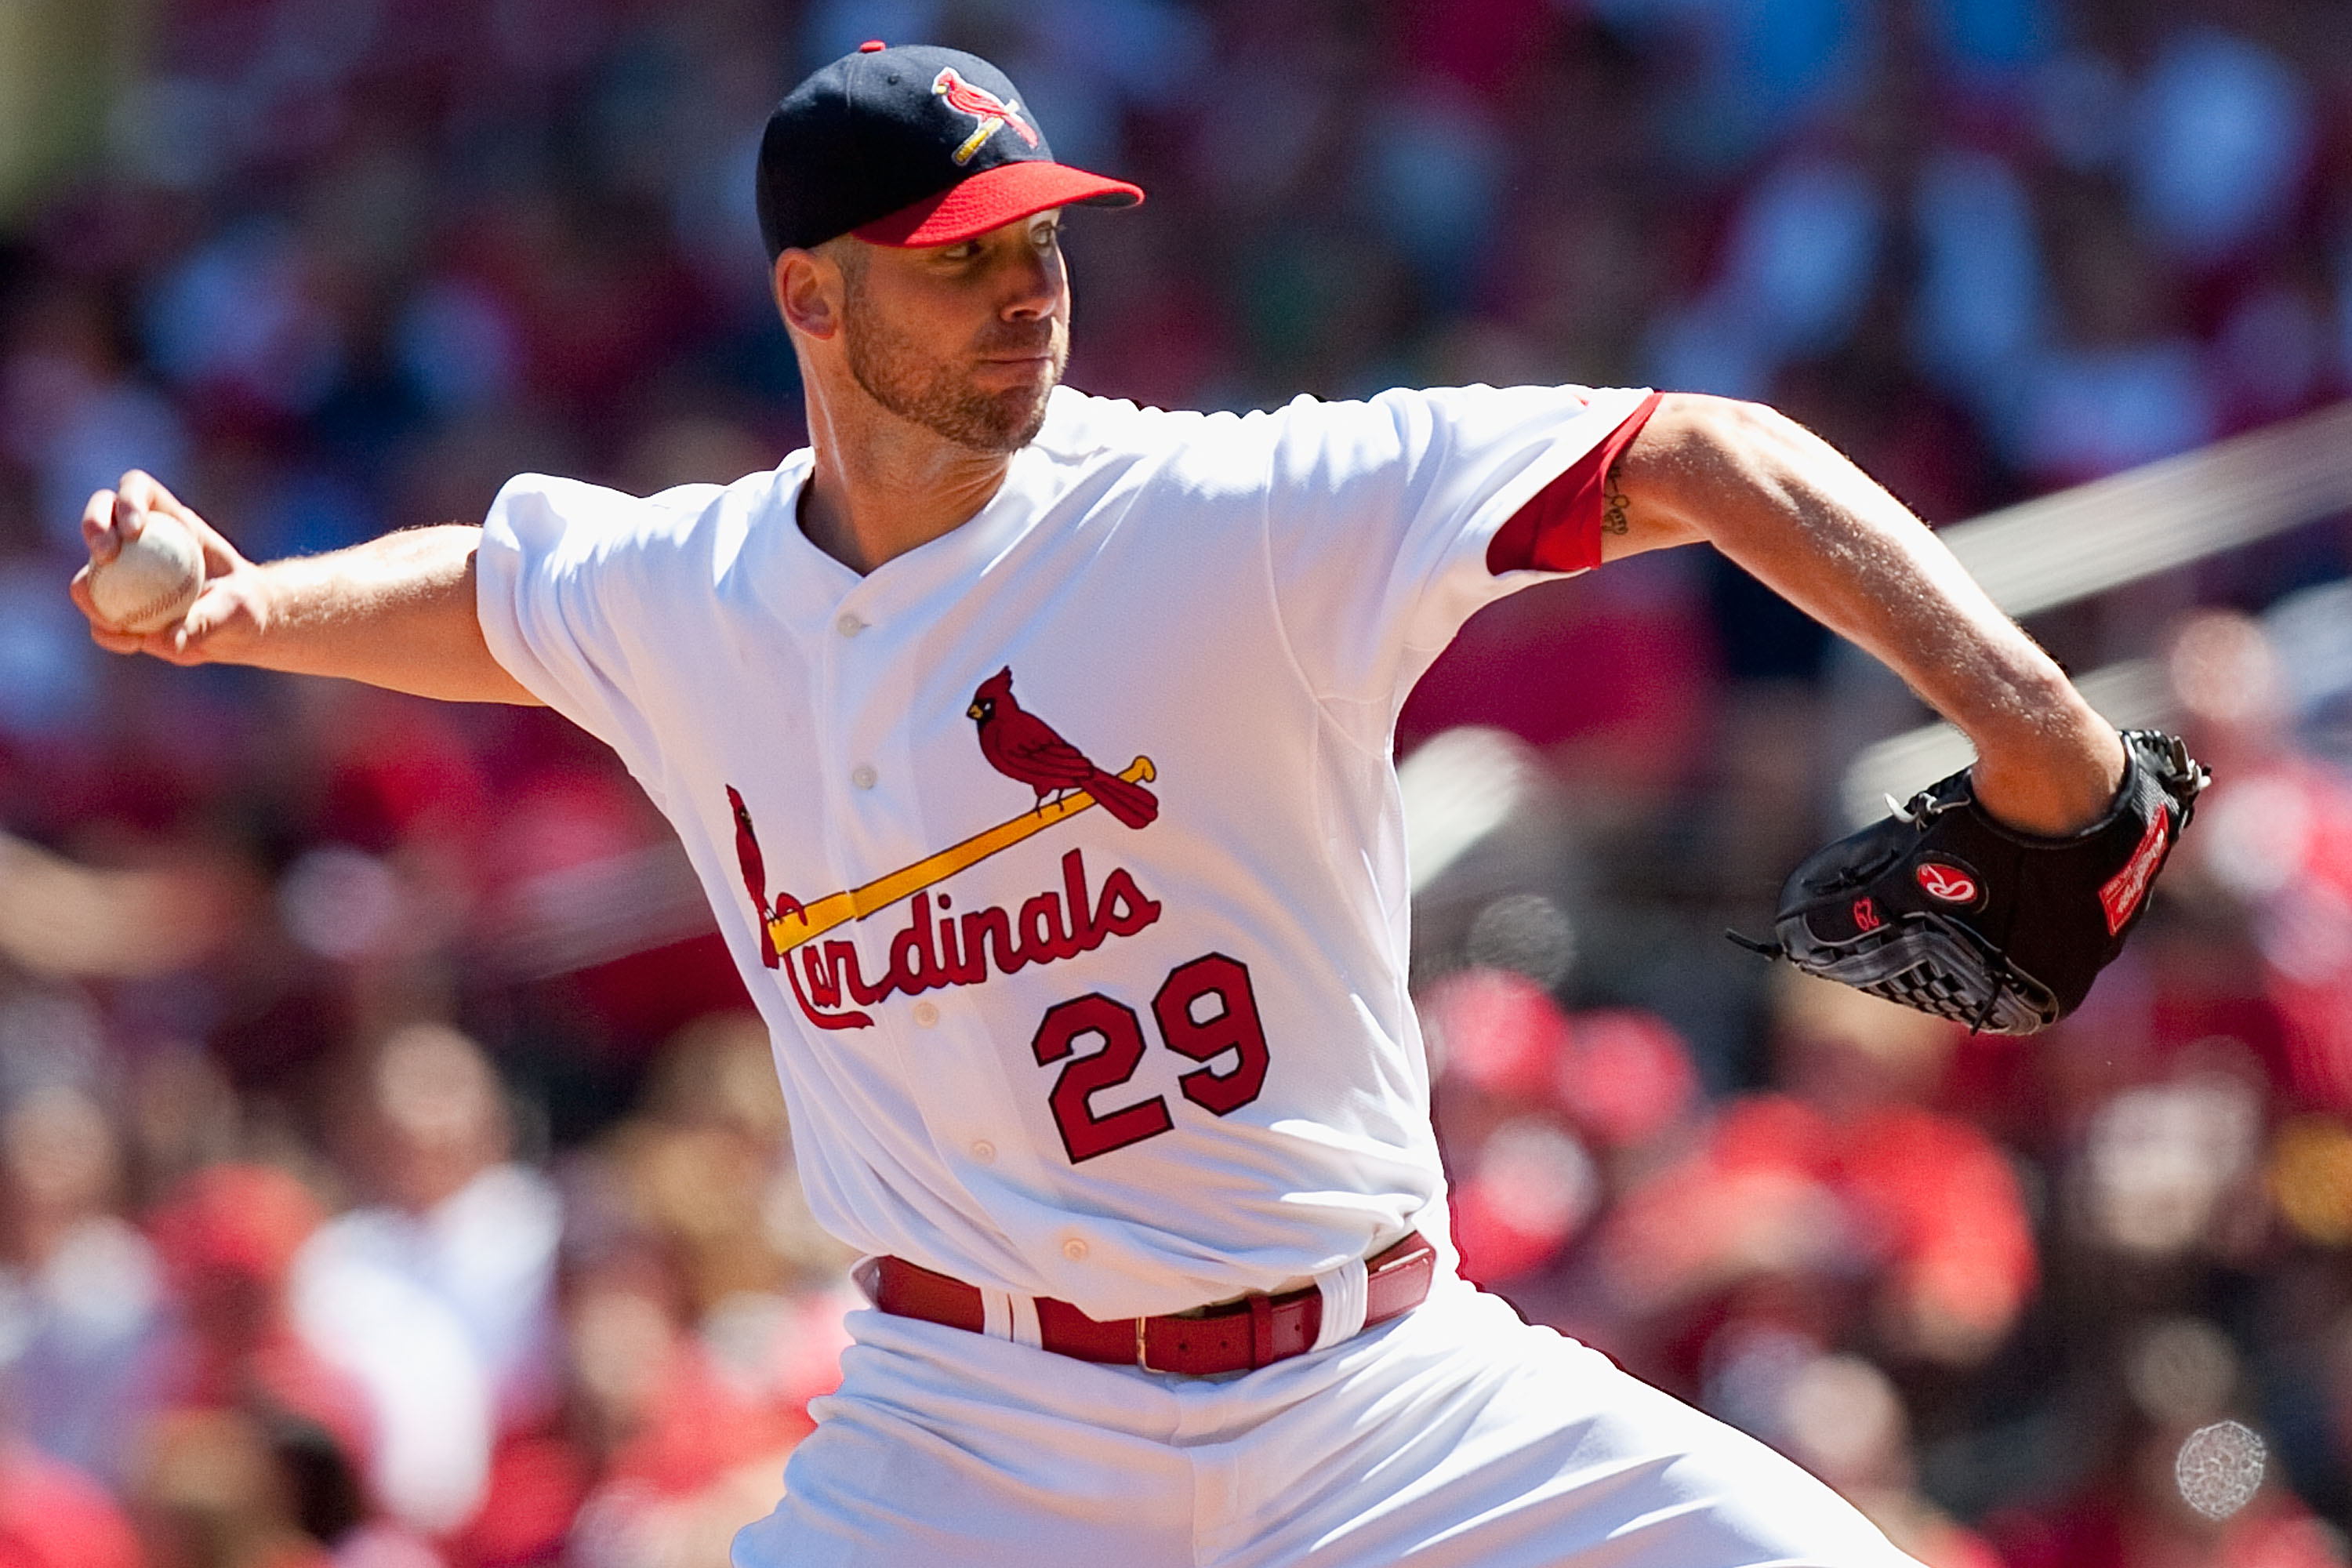 ST. LOUIS - SEPTEMBER 5: Starter Chris Carpenter #29 of the St. Louis Cardinals pitches against the Cincinnati Reds at Busch Stadium on September 5, 2010 in St. Louis, Missouri.  The Cardinals beat the Reds 4-2.  (Photo by Dilip Vishwanat/Getty Images)